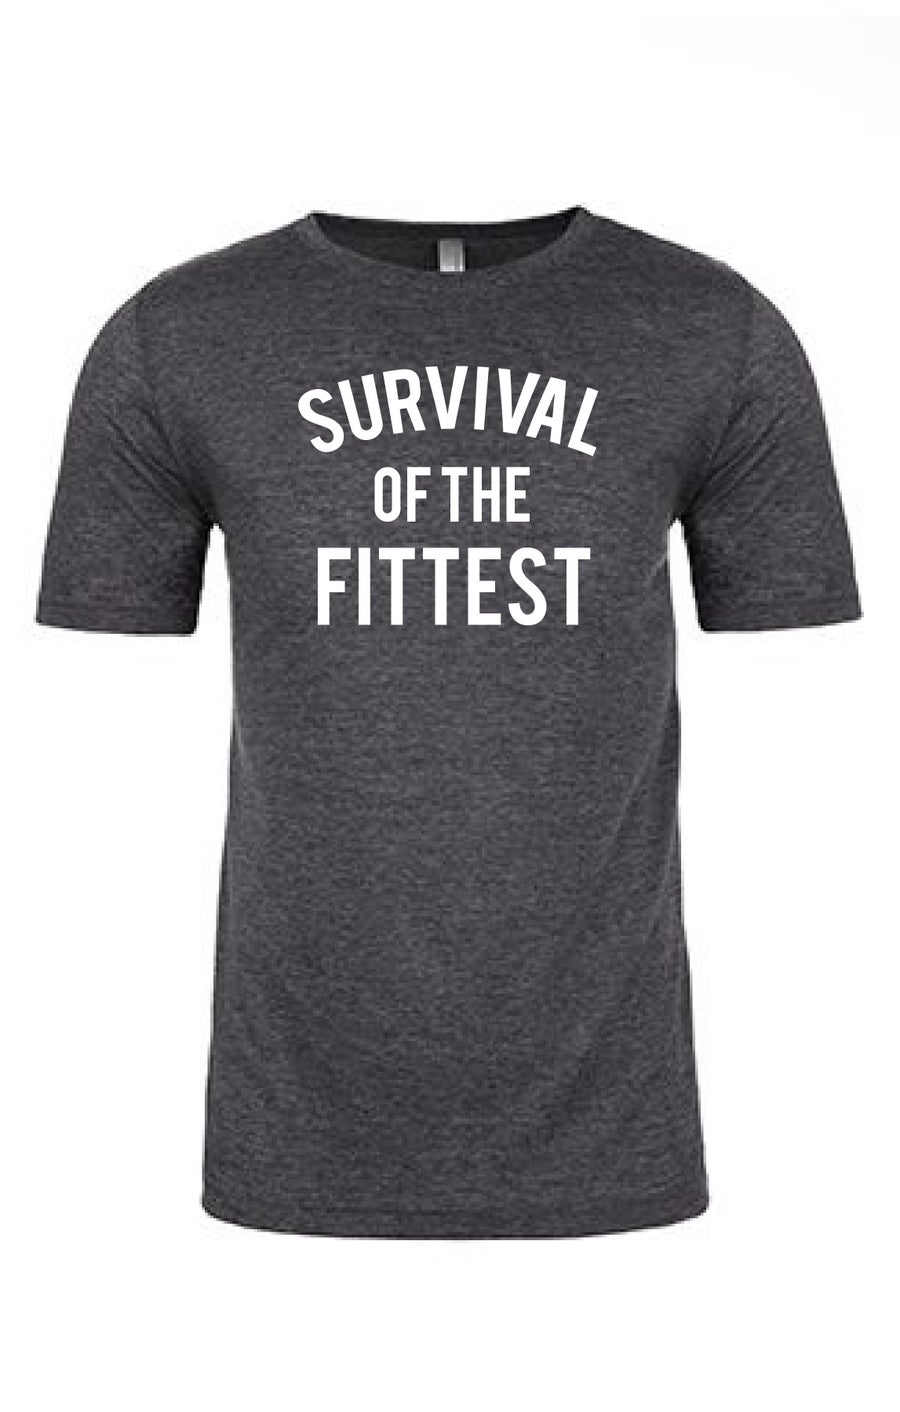 Image of Survival of the Fittest